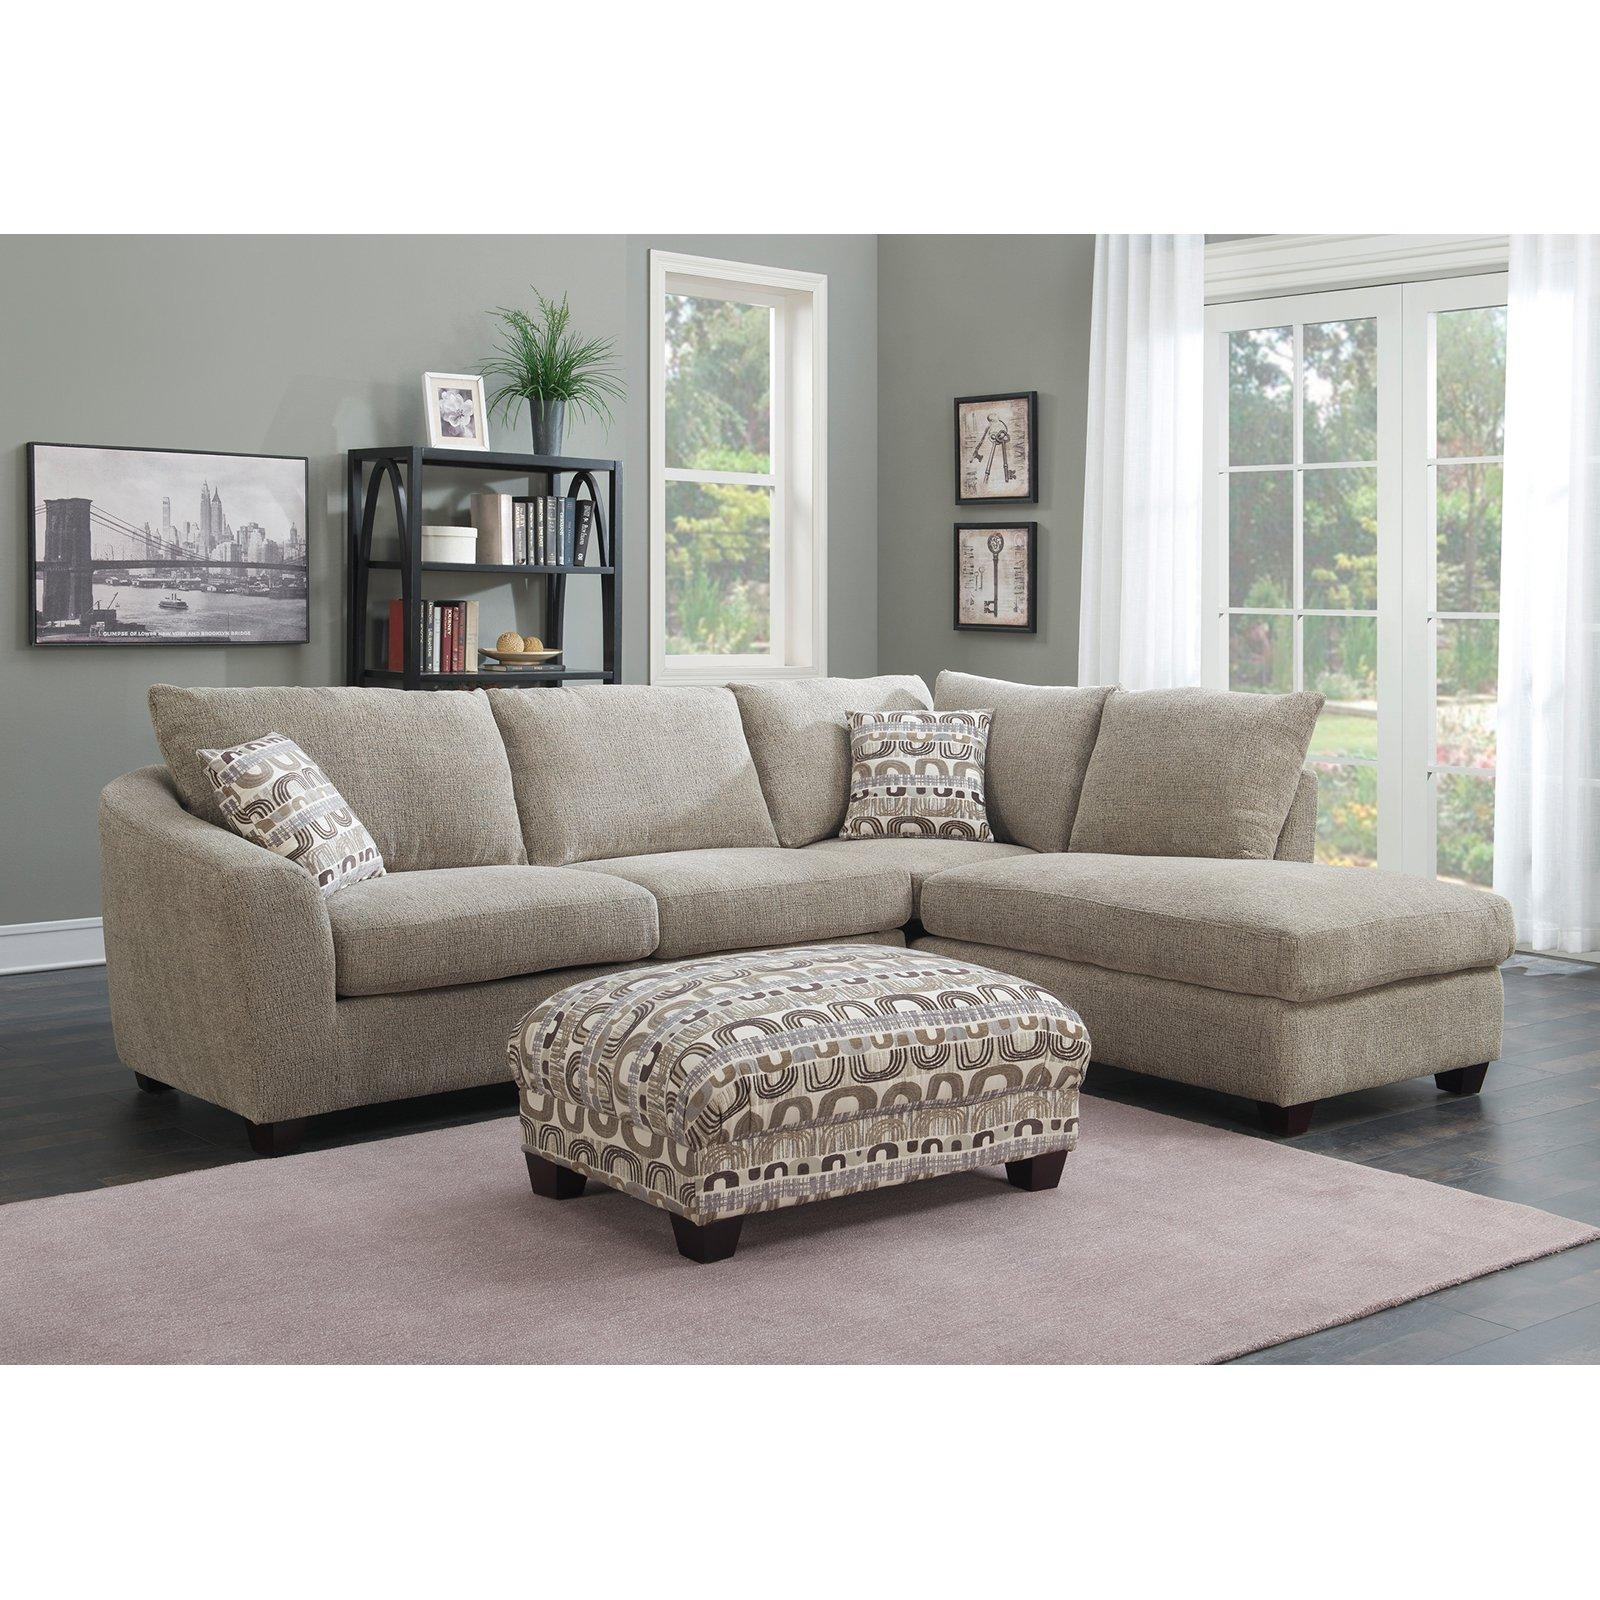 Sofas : Fabulous Sectional With Chaise 2 Piece Sectional Grey In Small 2 Piece Sectional Sofas (View 2 of 23)